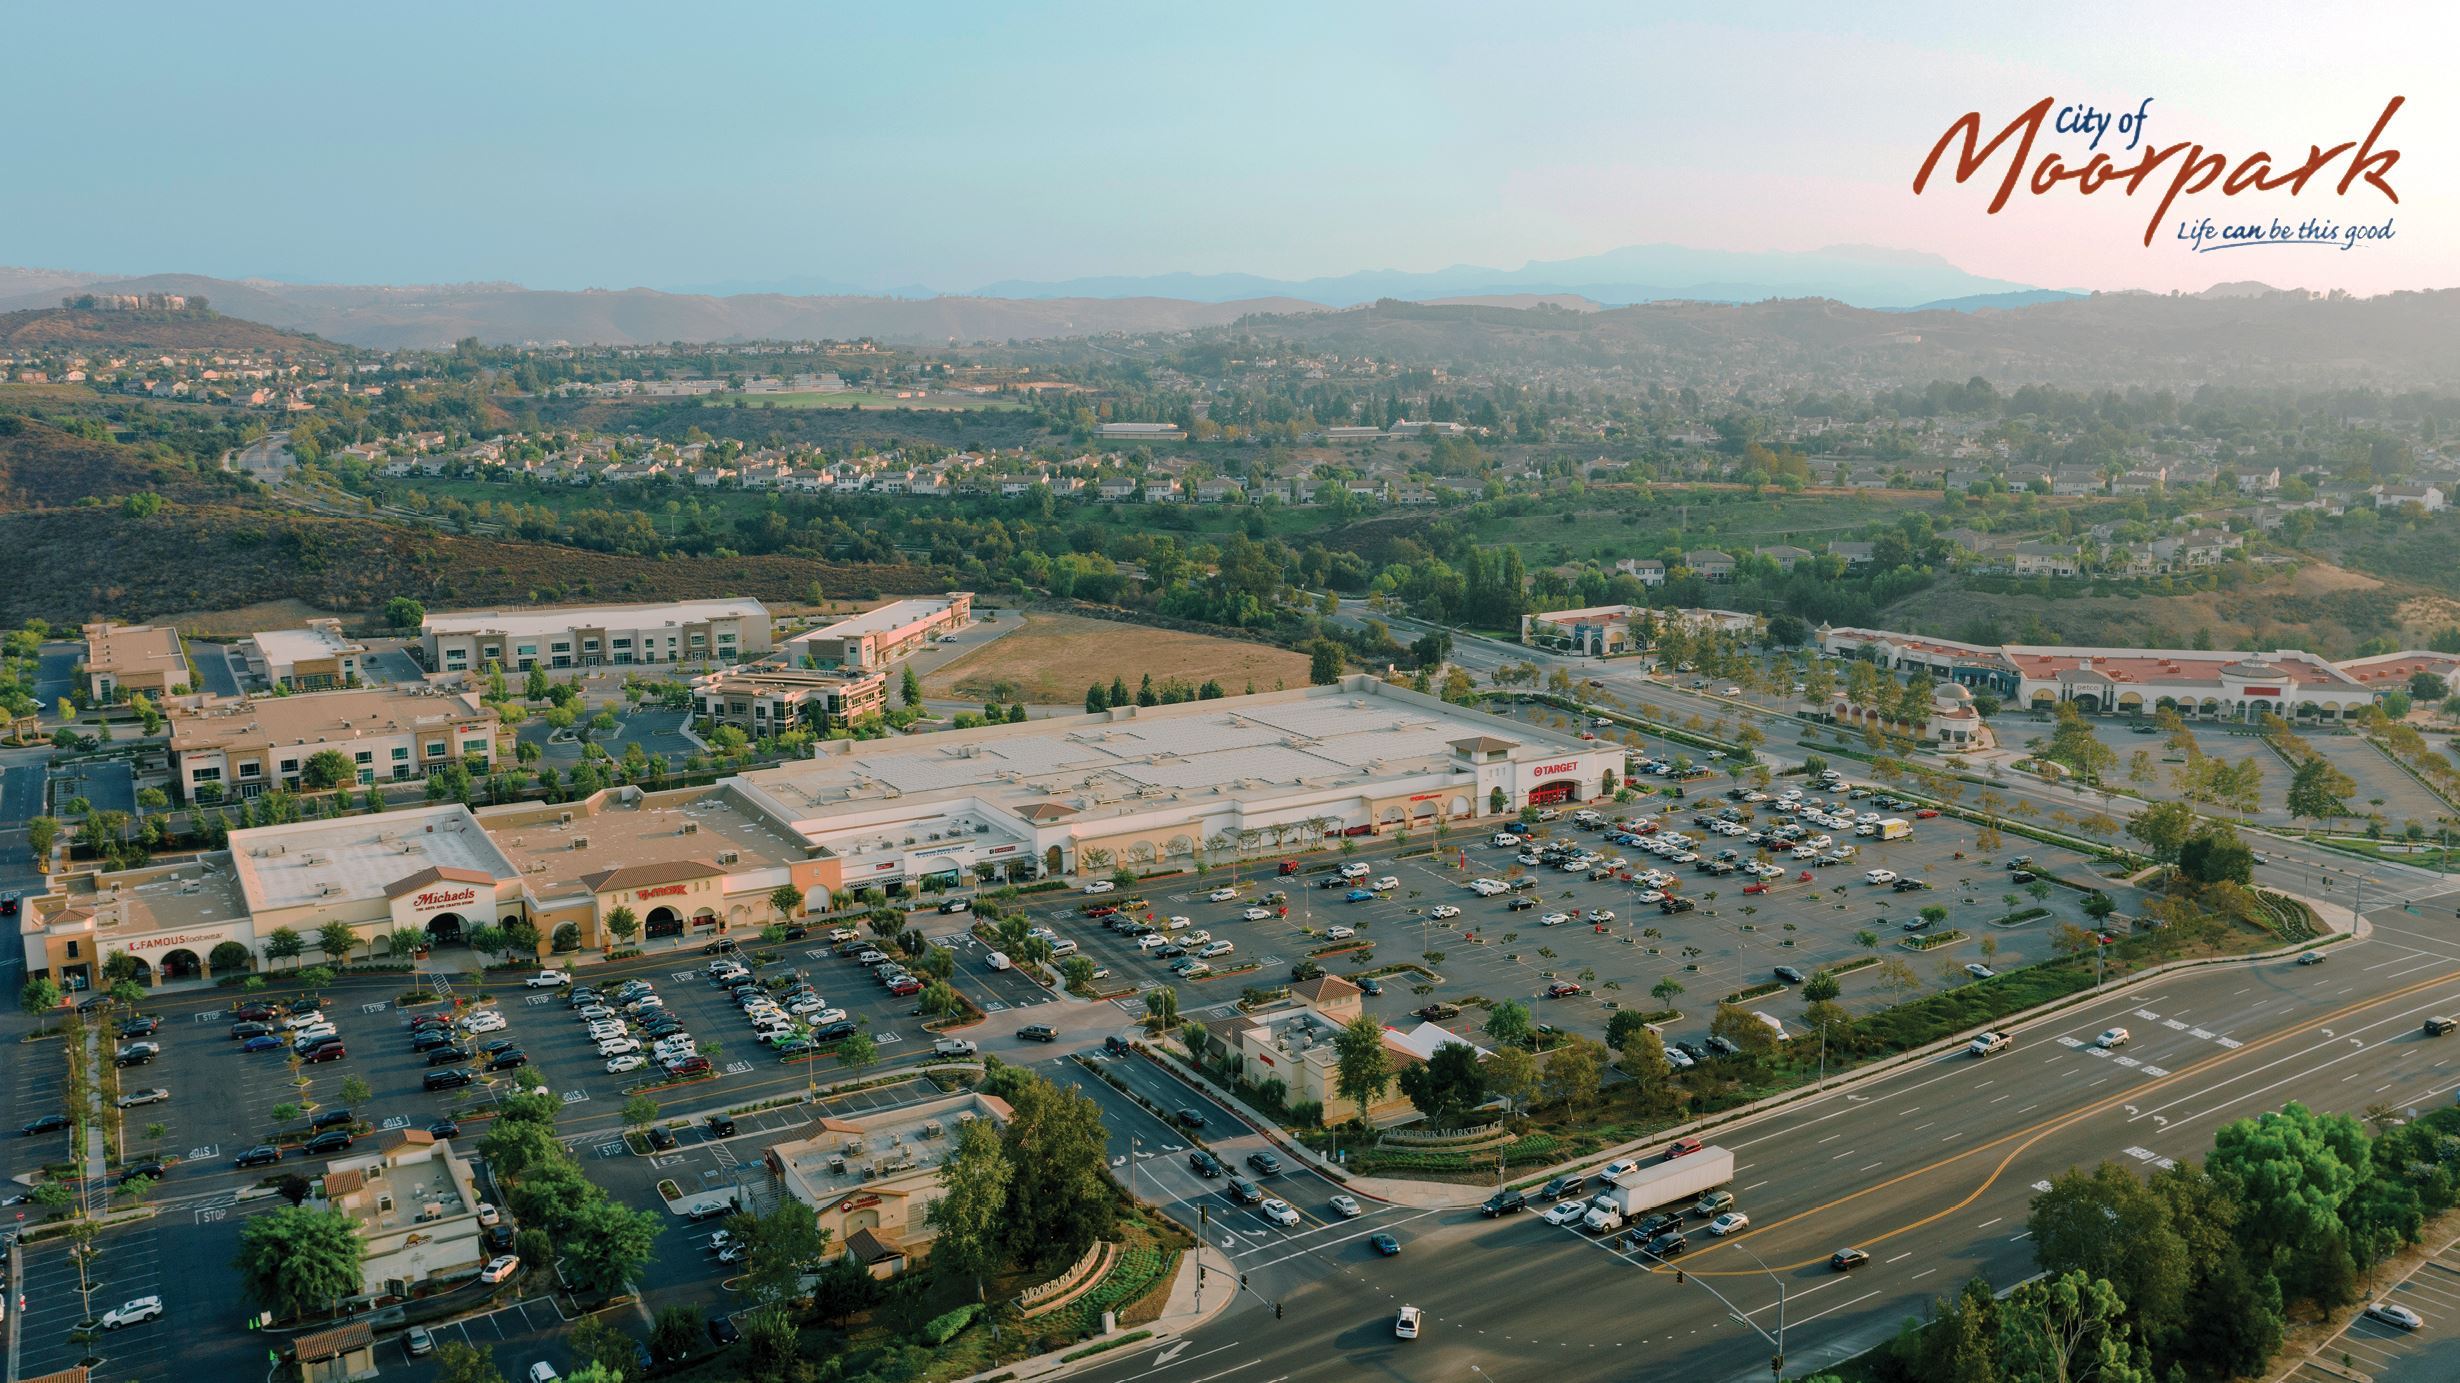 Aerial Photo of Moorpark Marketplace and surrounding neighborhoods